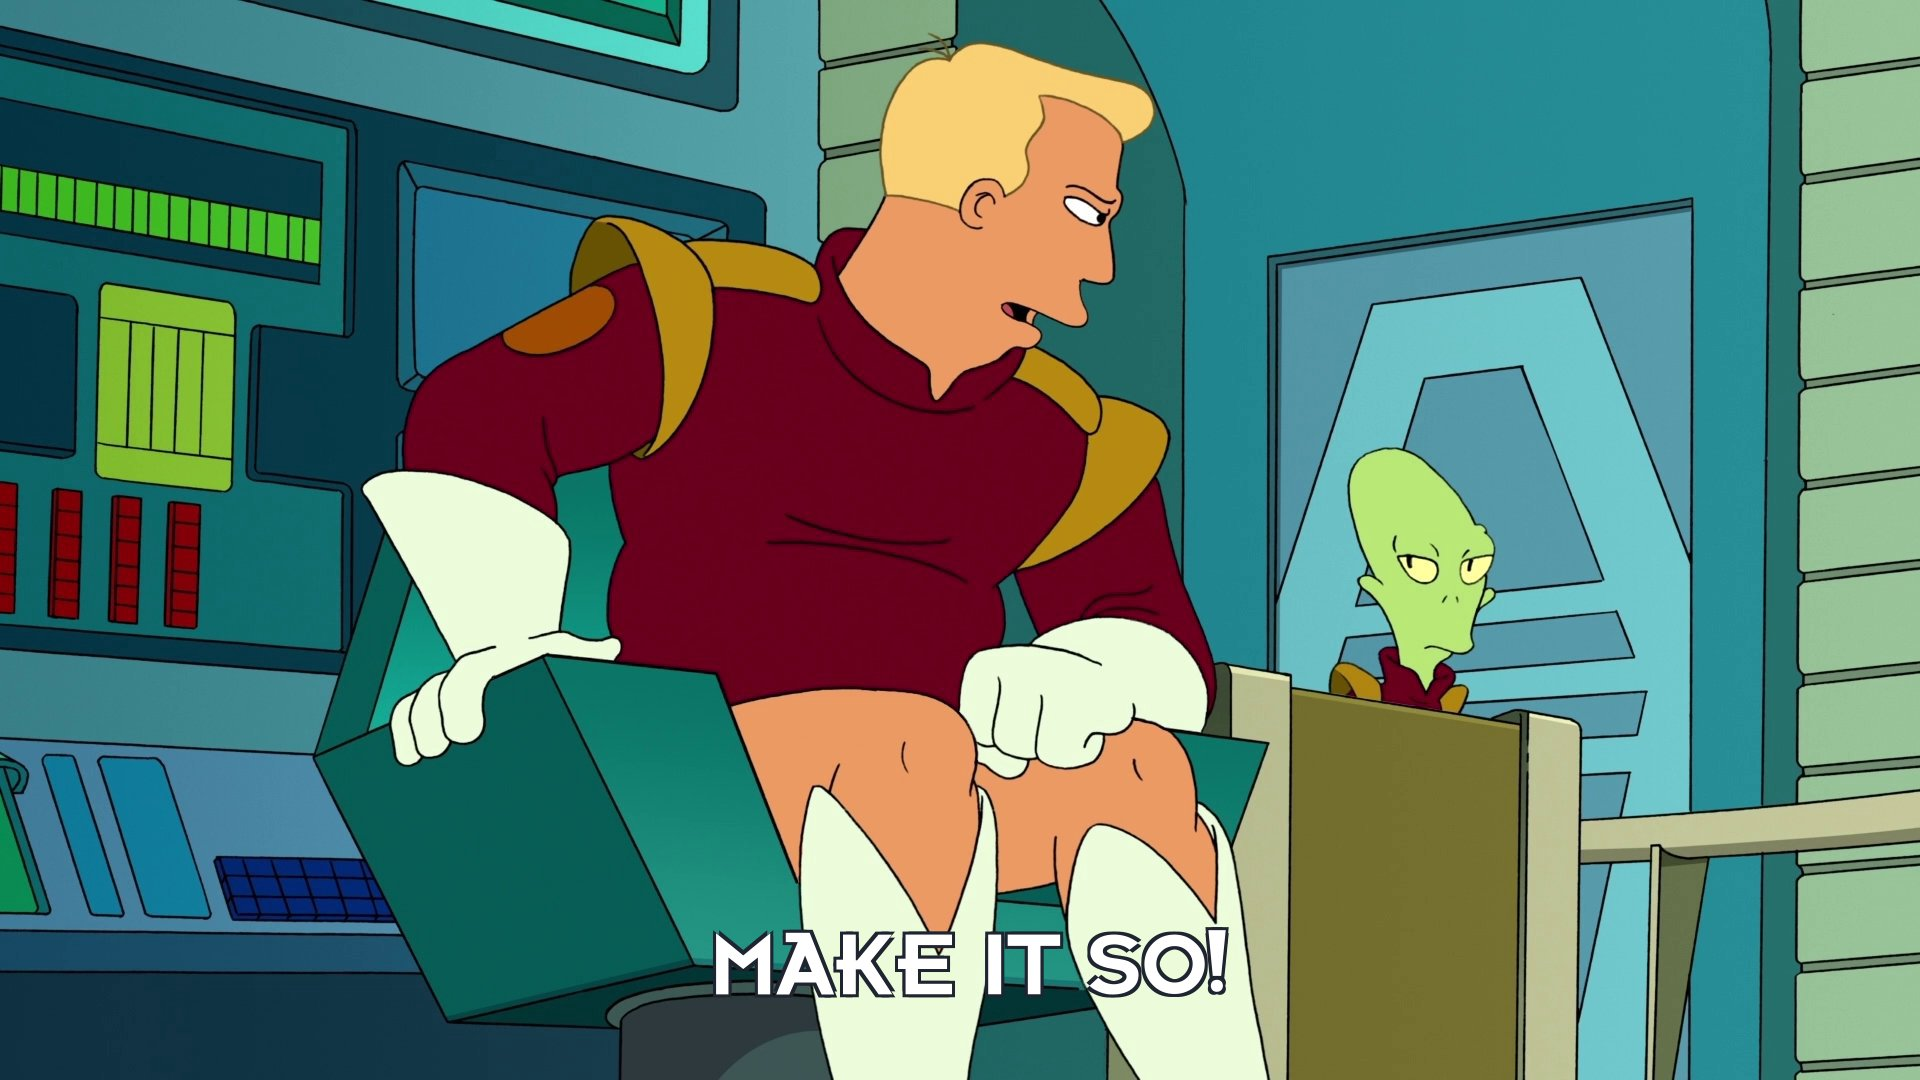 Zapp Brannigan: Make it so!